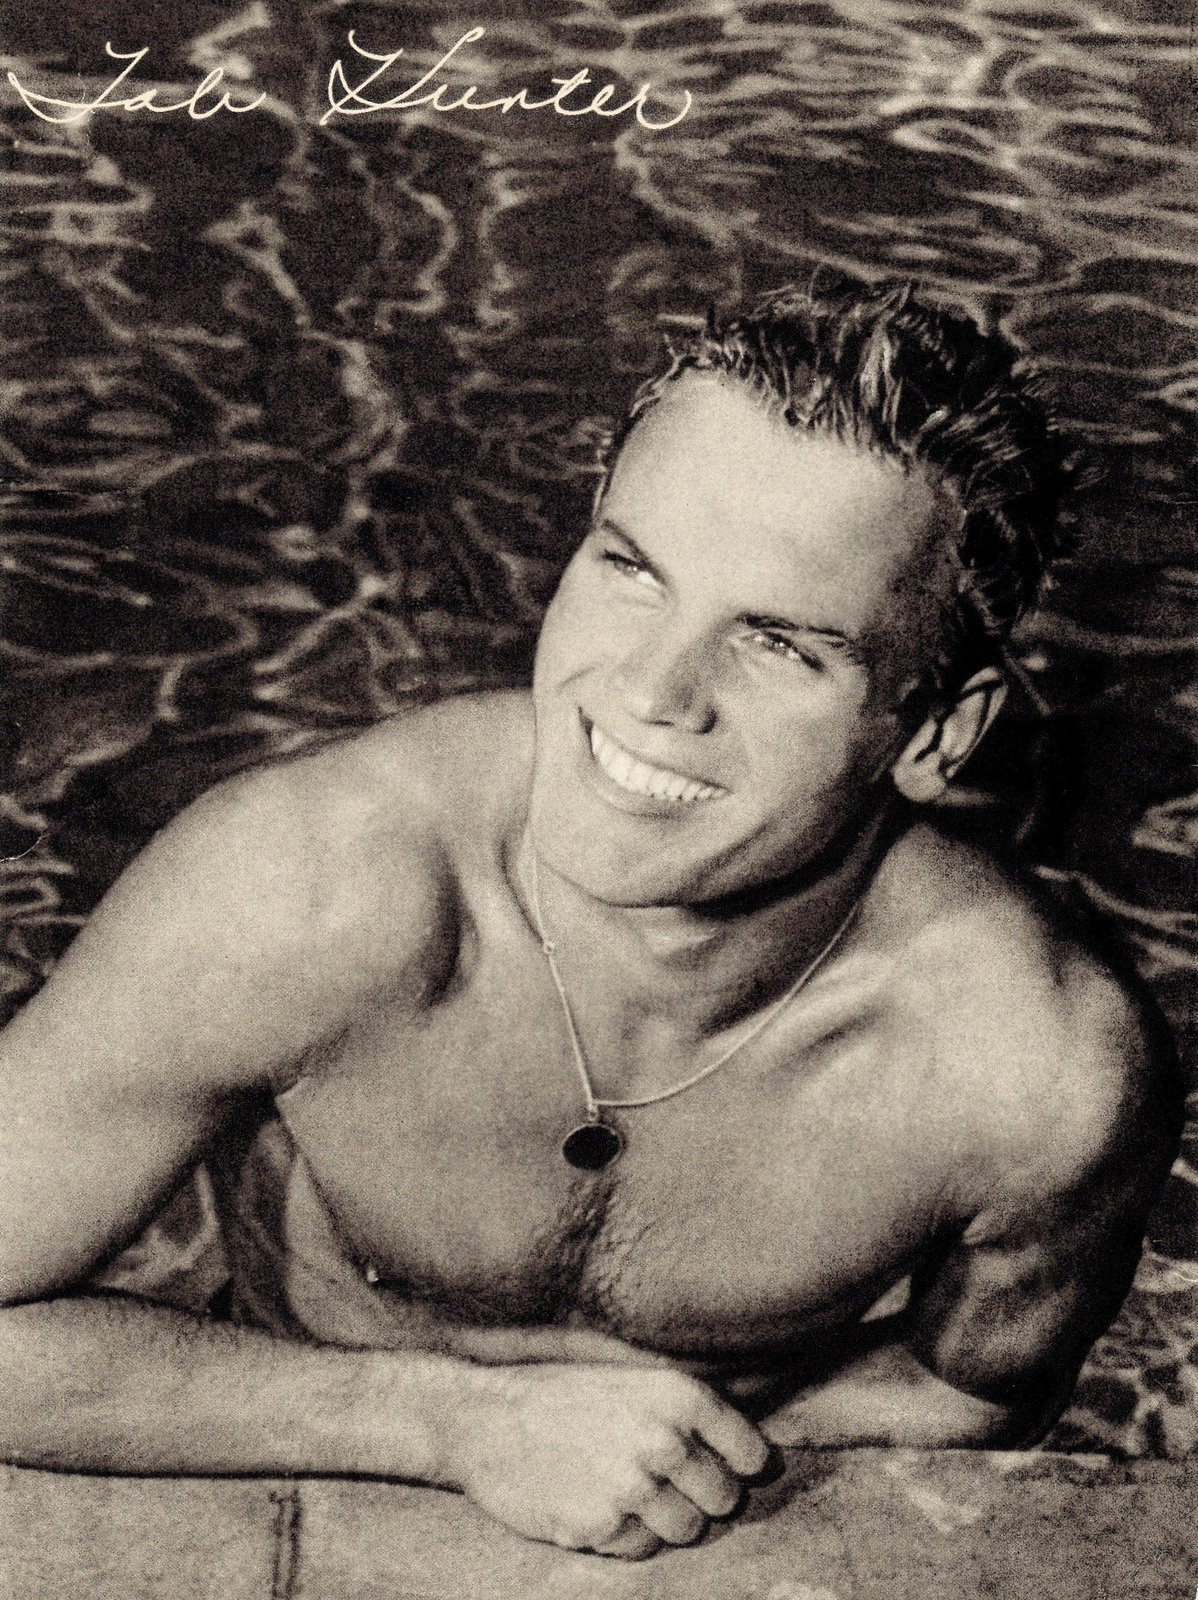 from Taylor is tab hunter gay